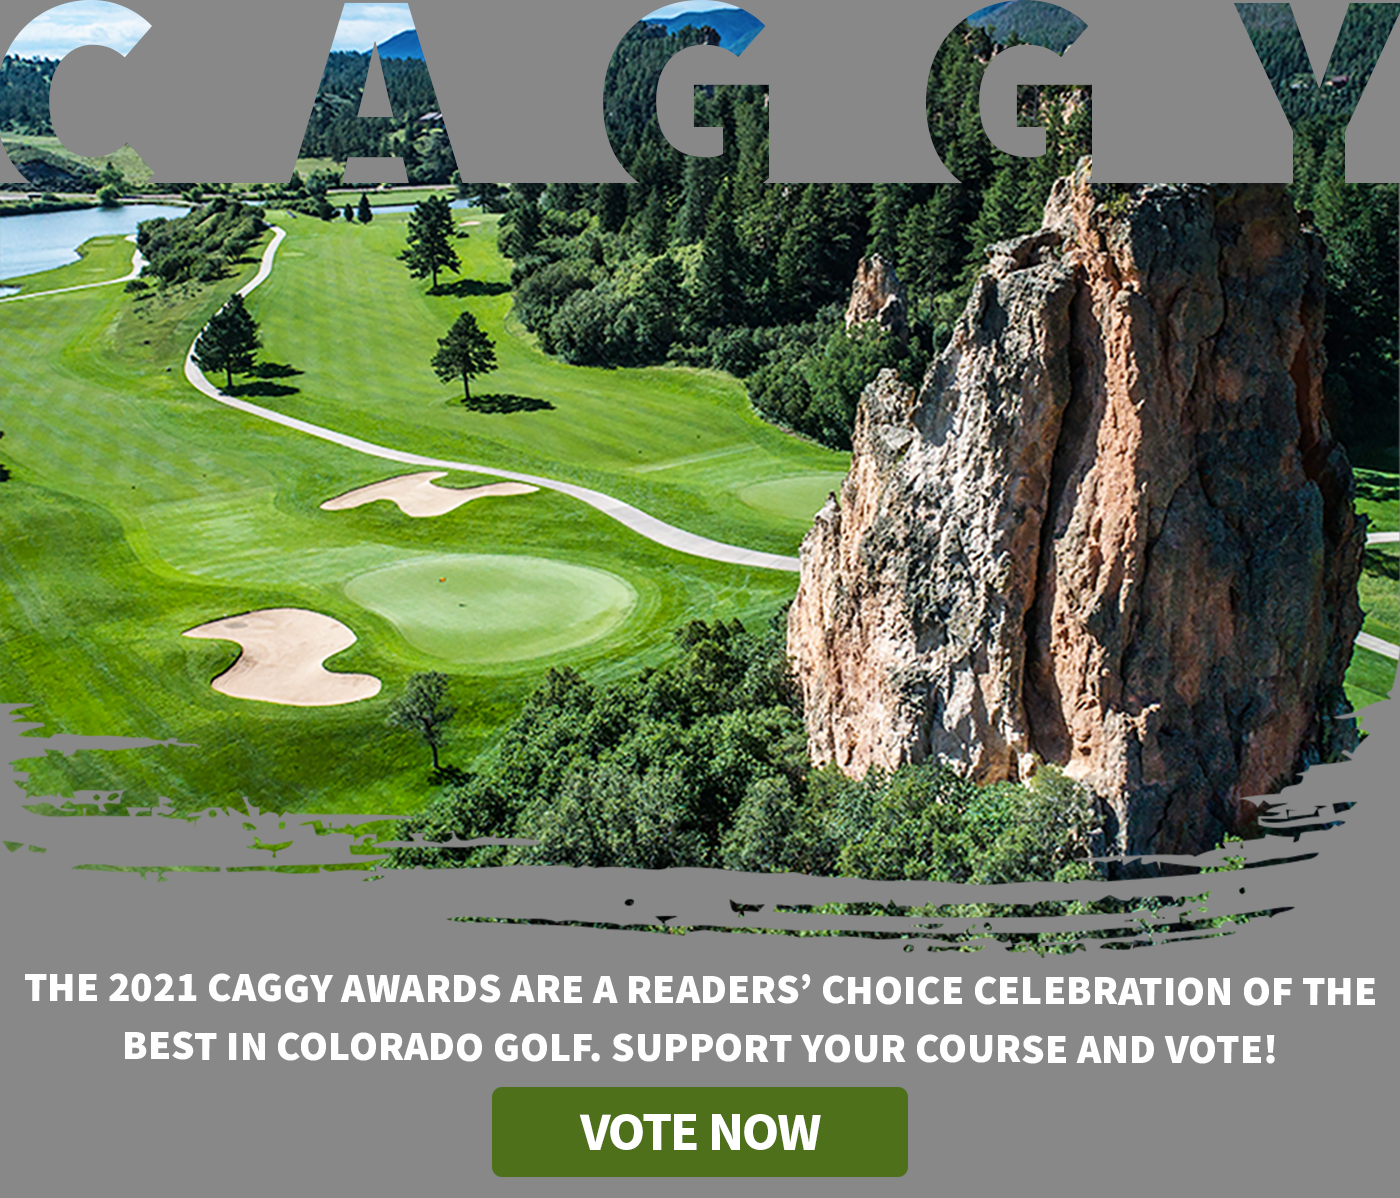 The 2021 CAGGY Awards